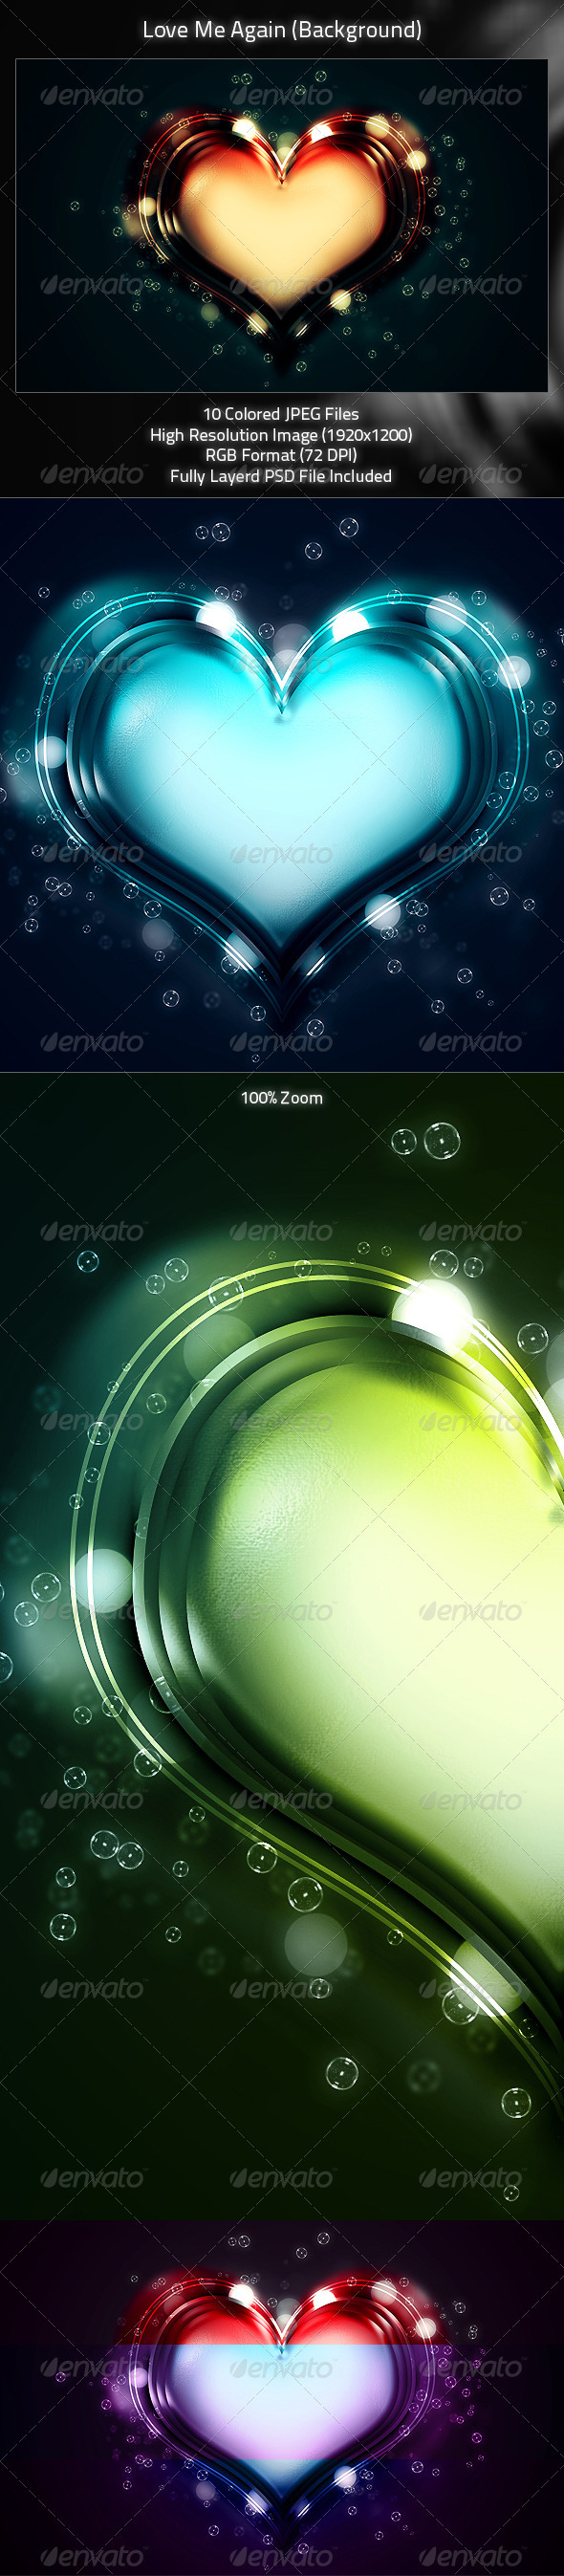 Love Me Again (Background Design) - Miscellaneous Backgrounds